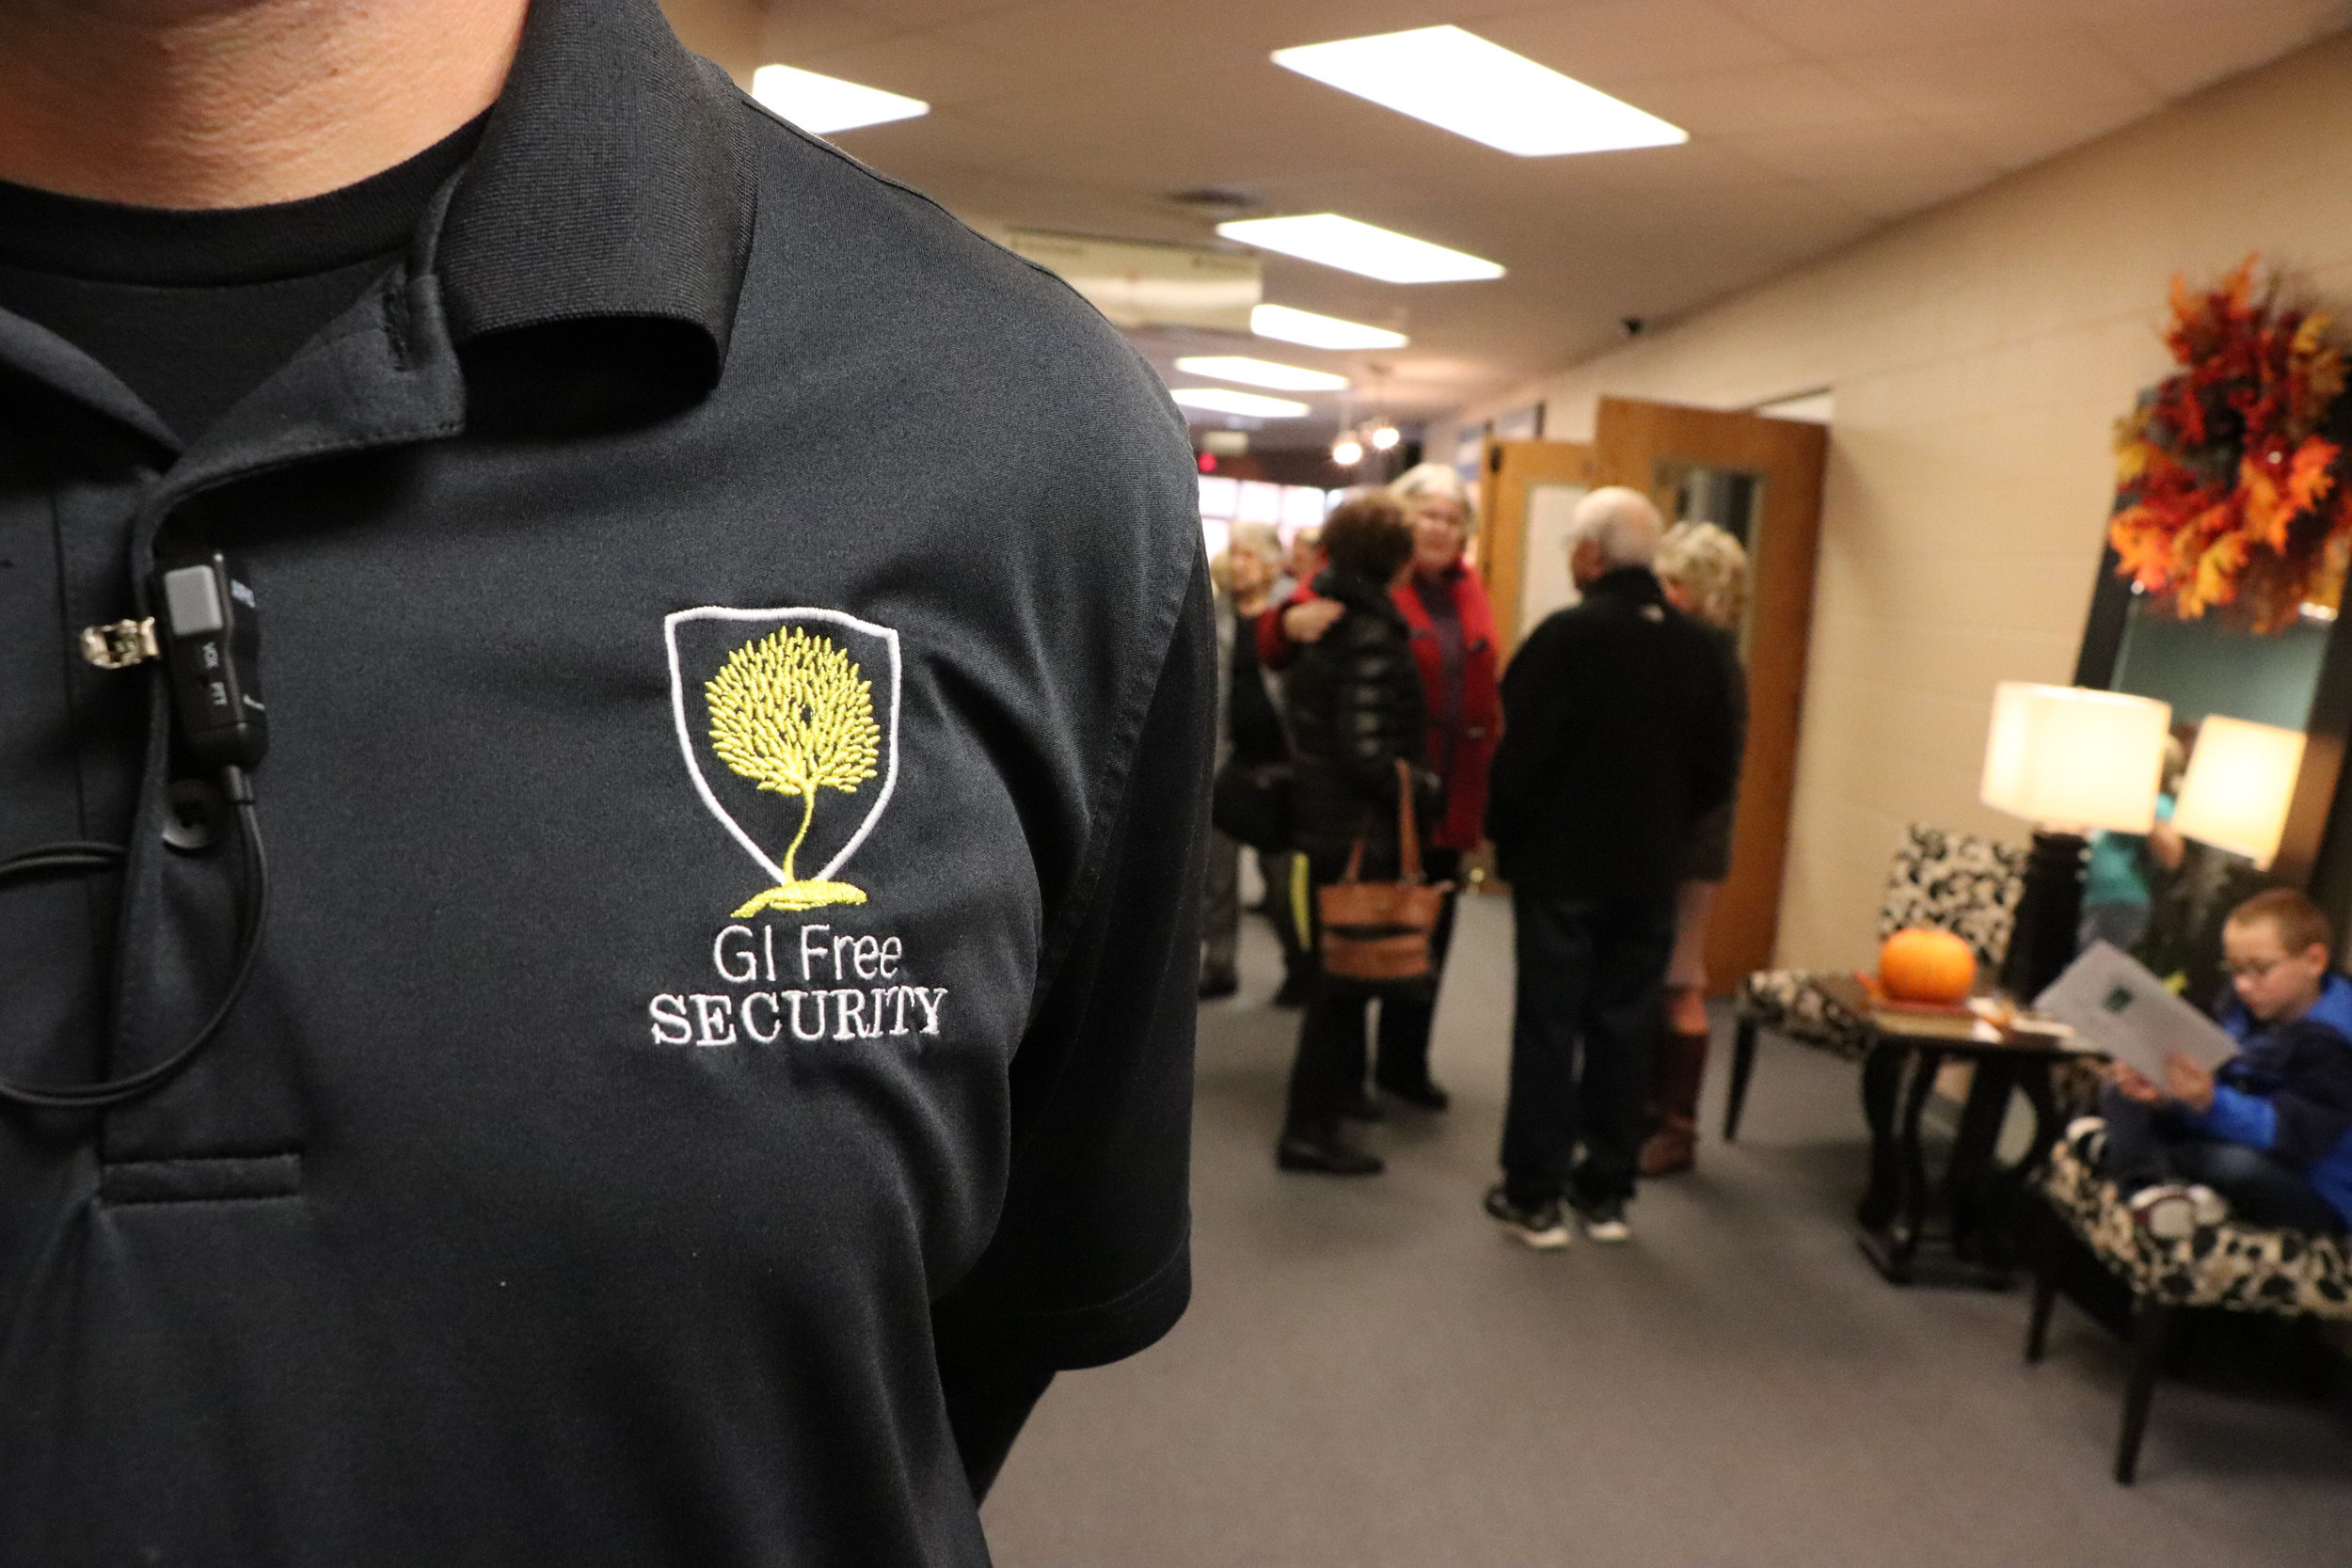 Security - Proactively safeguarding the church during Sunday and other large group gatherings